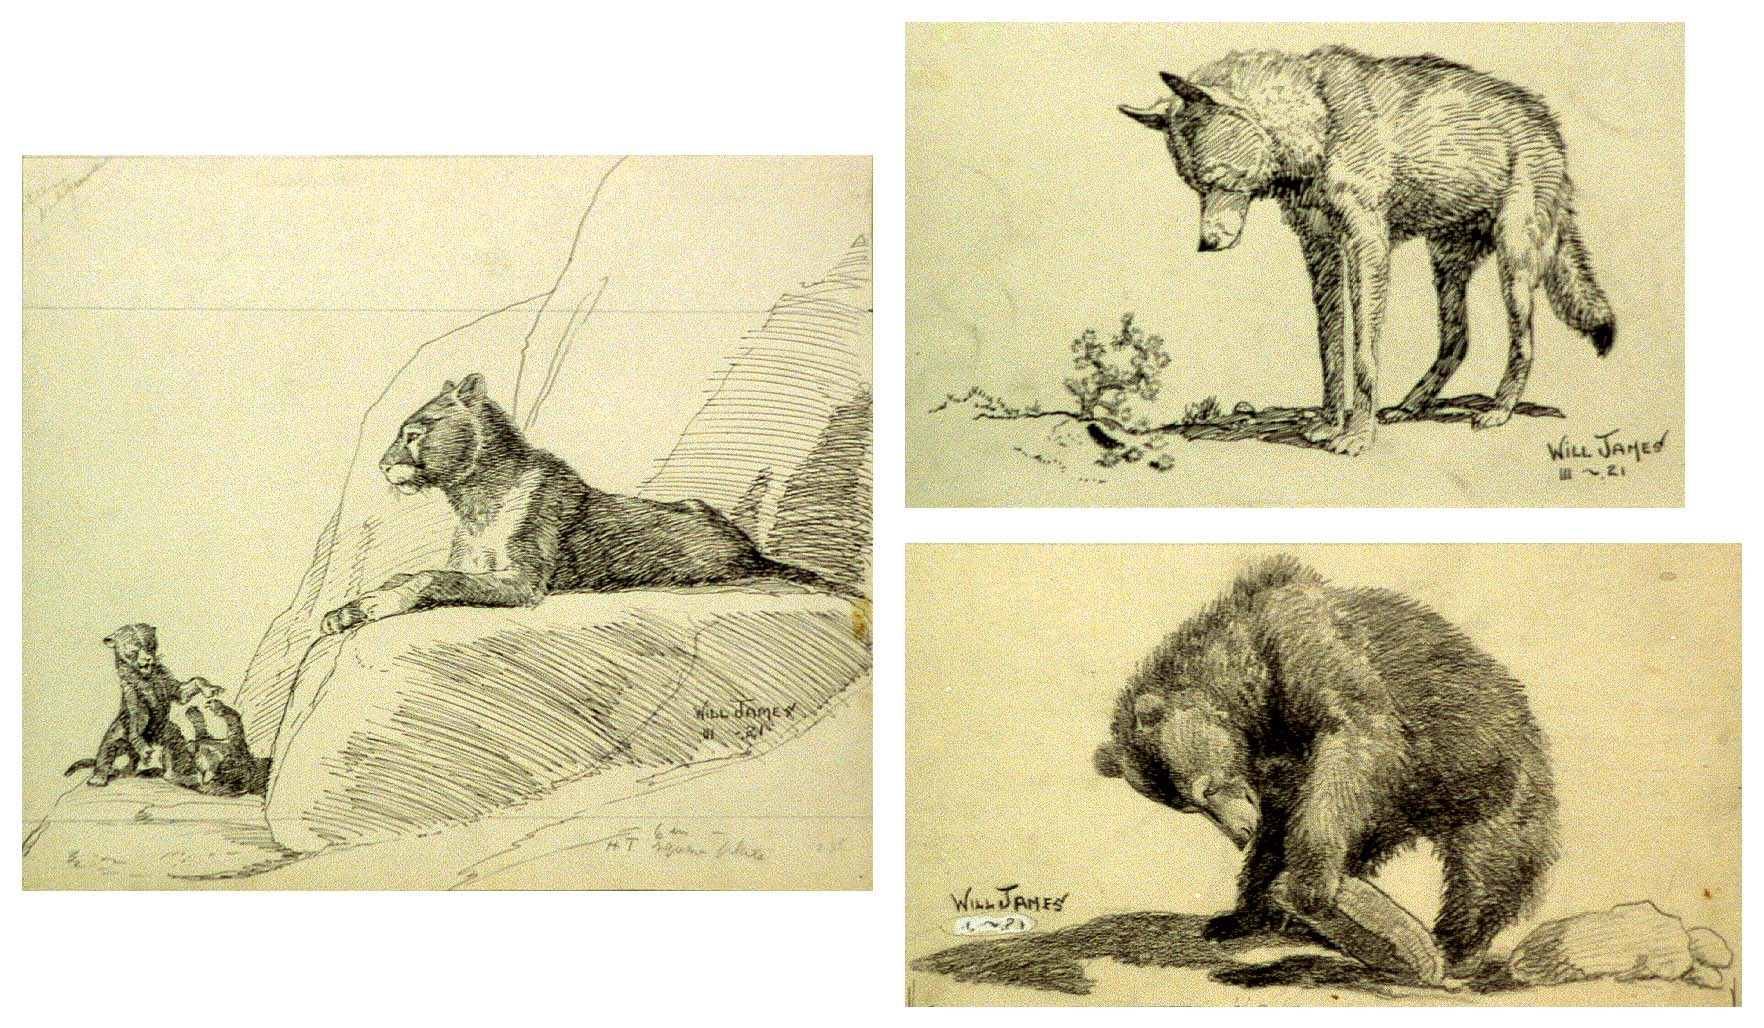 "James's work can often be characterized as ""simplified with crisp draftsmanship"" as in these sketches from Watched by Wild Animals, [Enos A. Mills, New York: Doubleday, Page & Co., 1922; not published]. Cabinet of American illustration. Library of Congress Prints and Photographs Division, Washington, DC 20540 USA. ""Looking for Small Favors."" 2010716934 / ""Coyote, Clown of the Prairies."" 2010716932 / ""The Mountain Lion."" 2010716933"